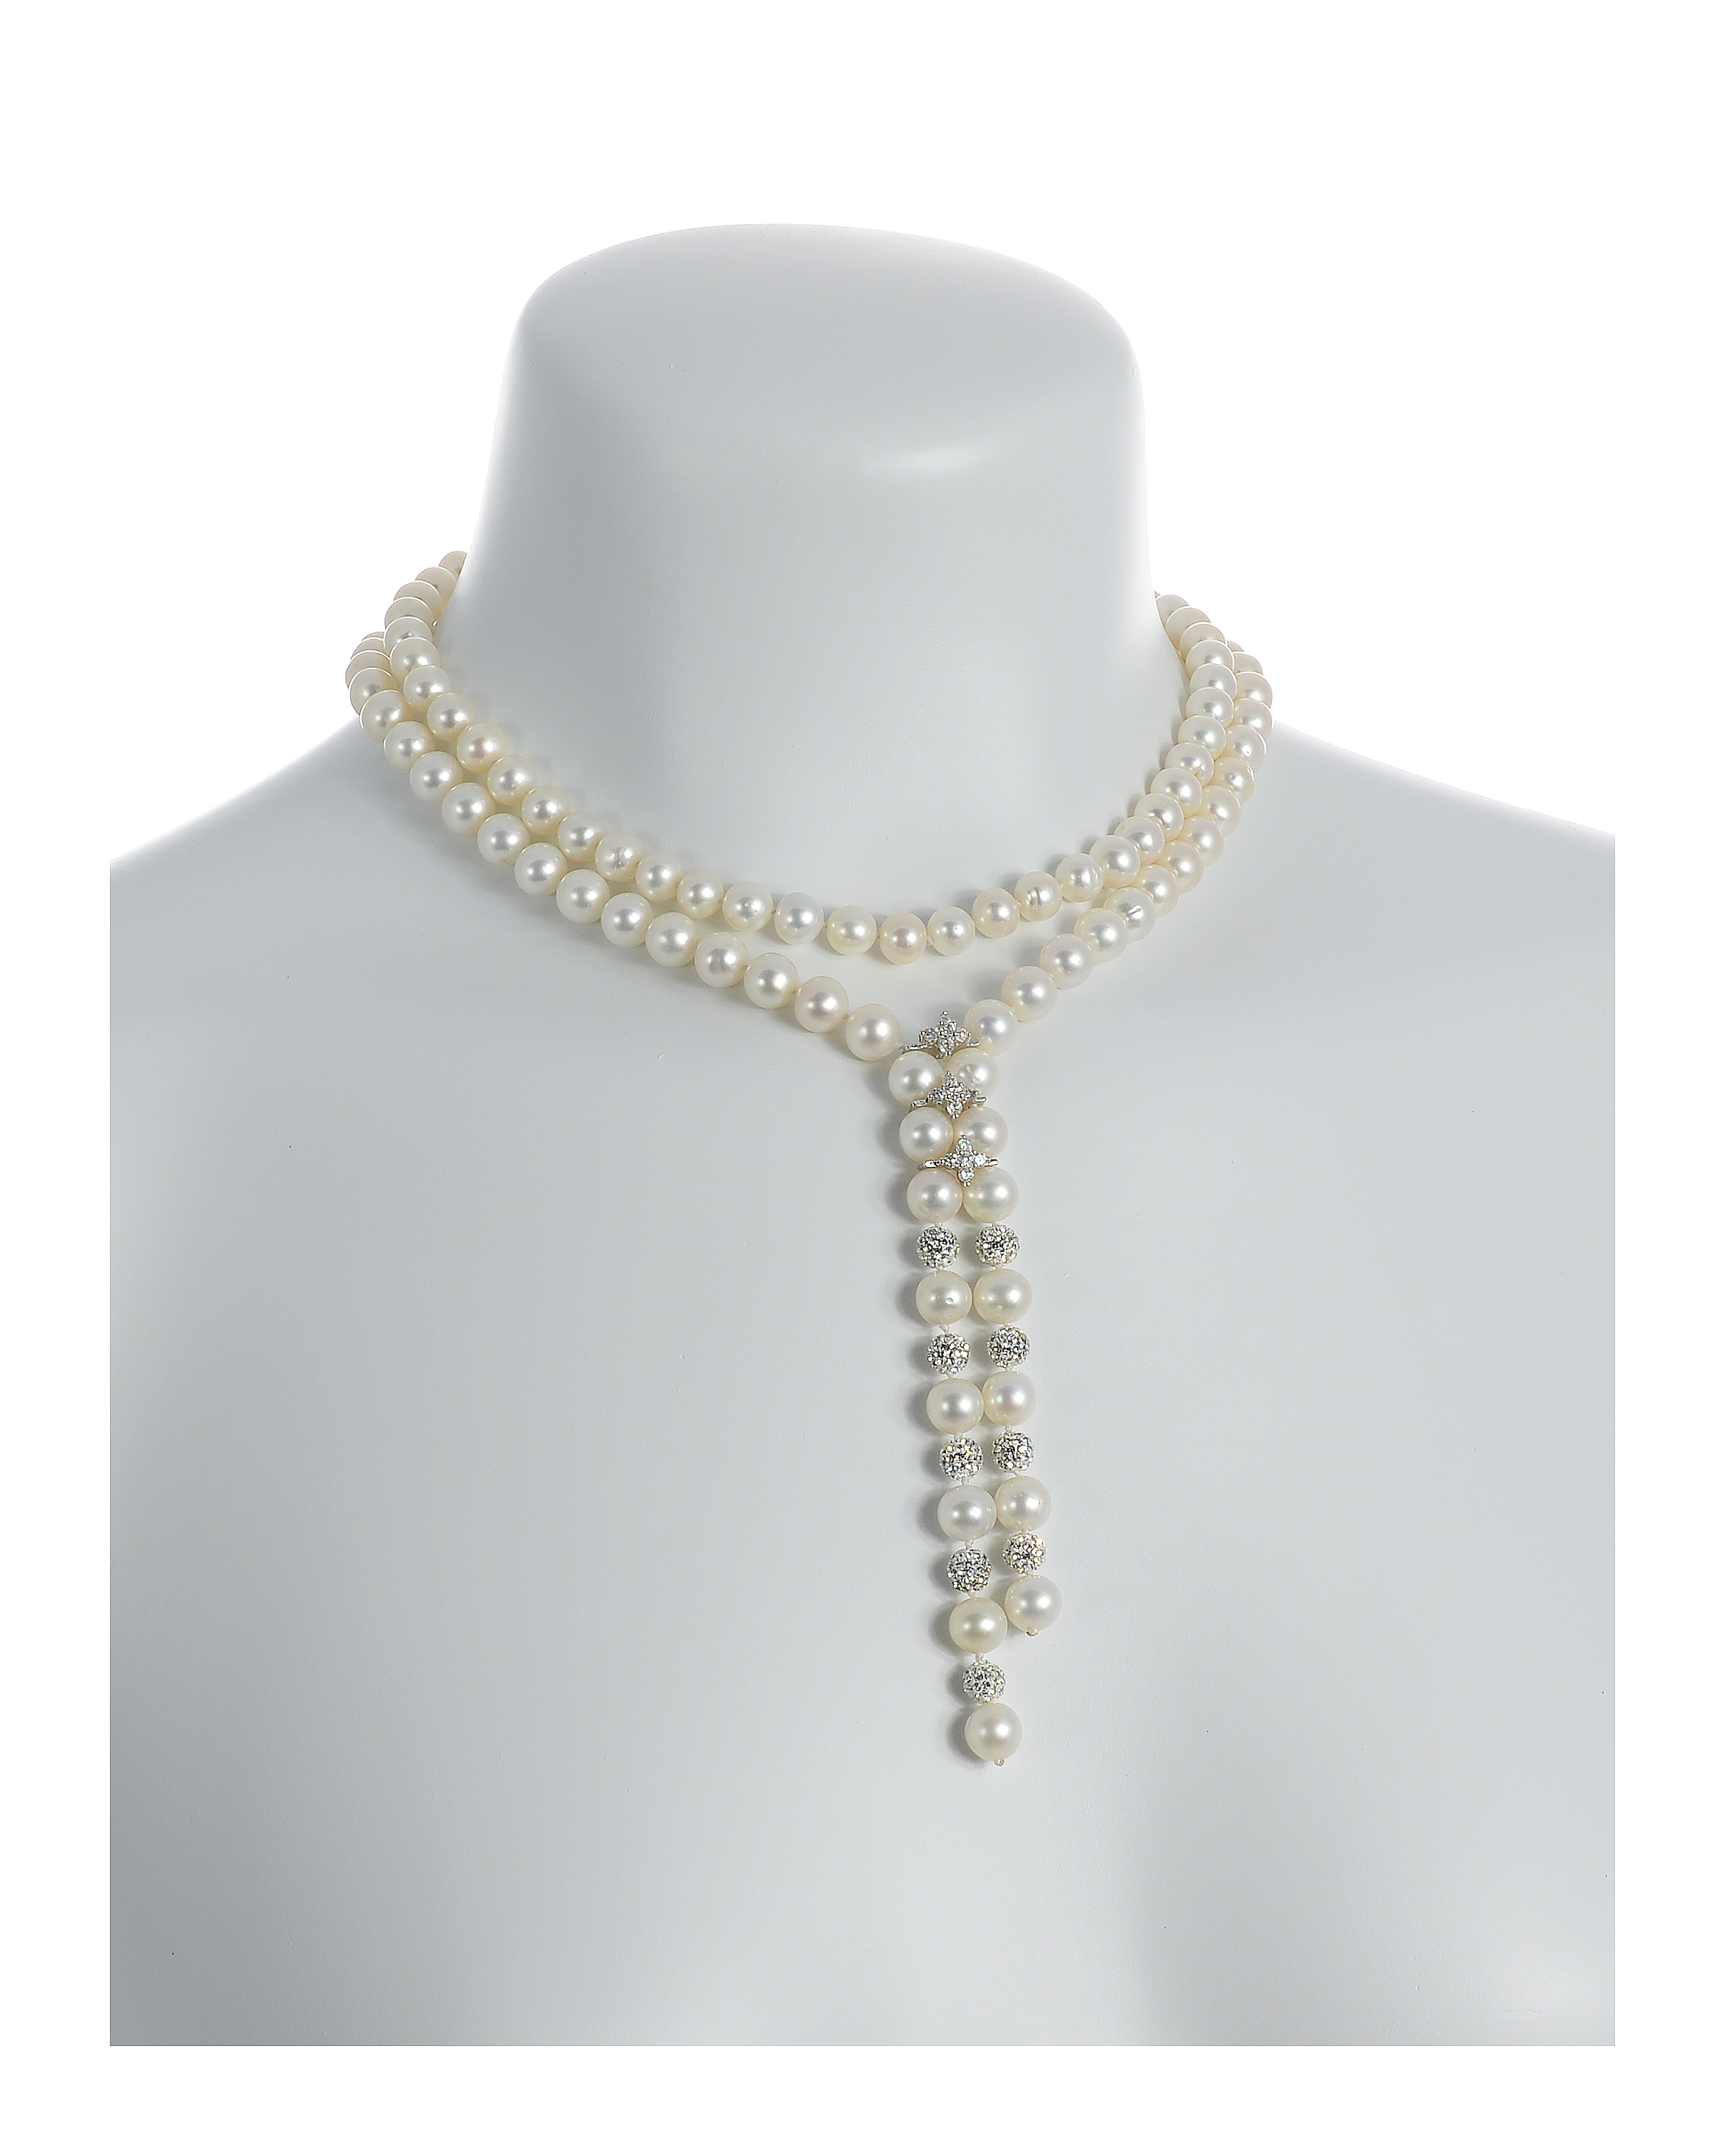 Diamond Falls - White Pearl Necklace with Swarovski Crystals